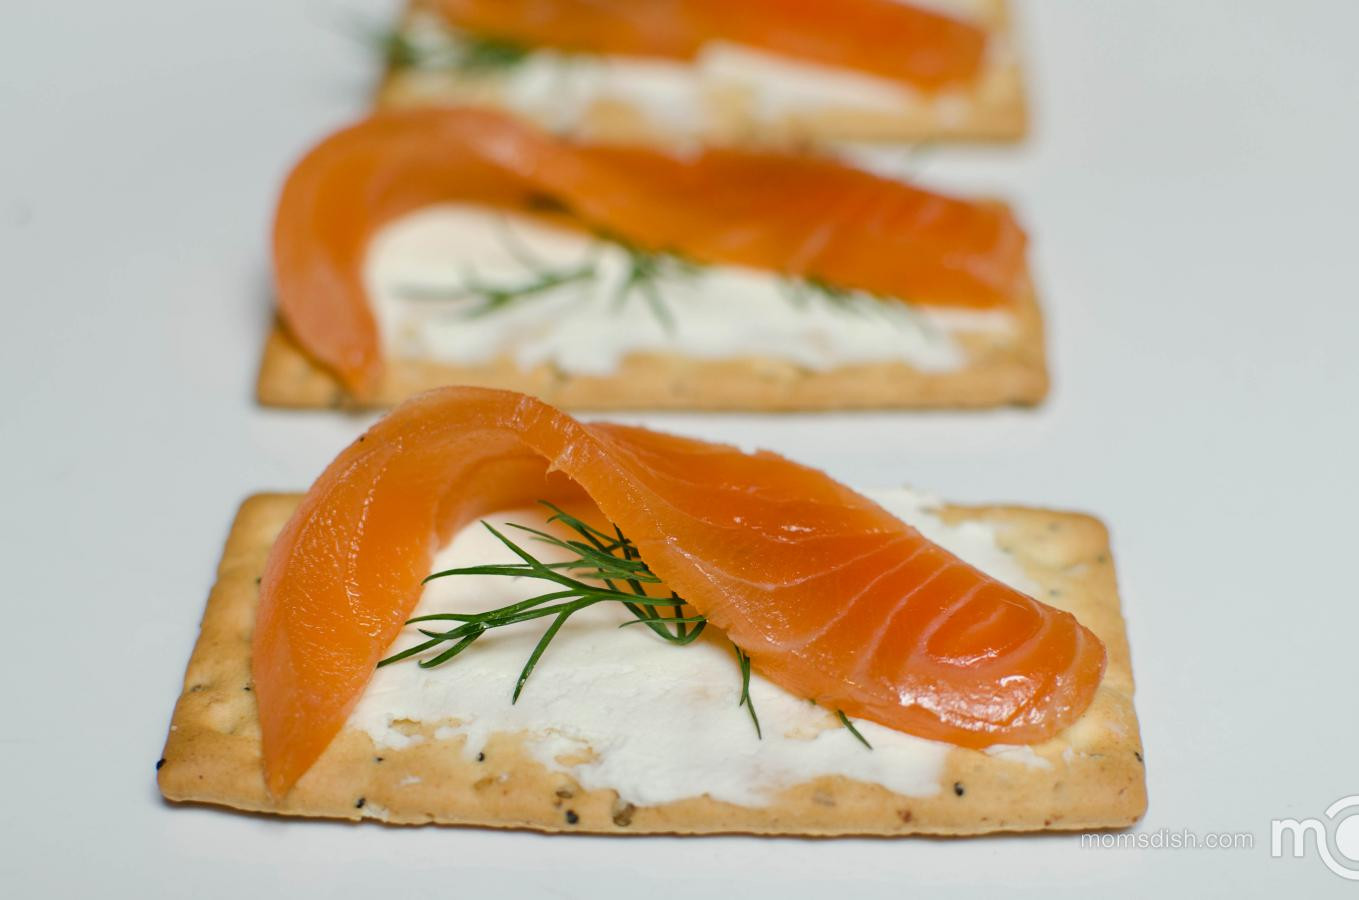 Cold Smoked Salmon Recipes  Cold Smoked Salmon